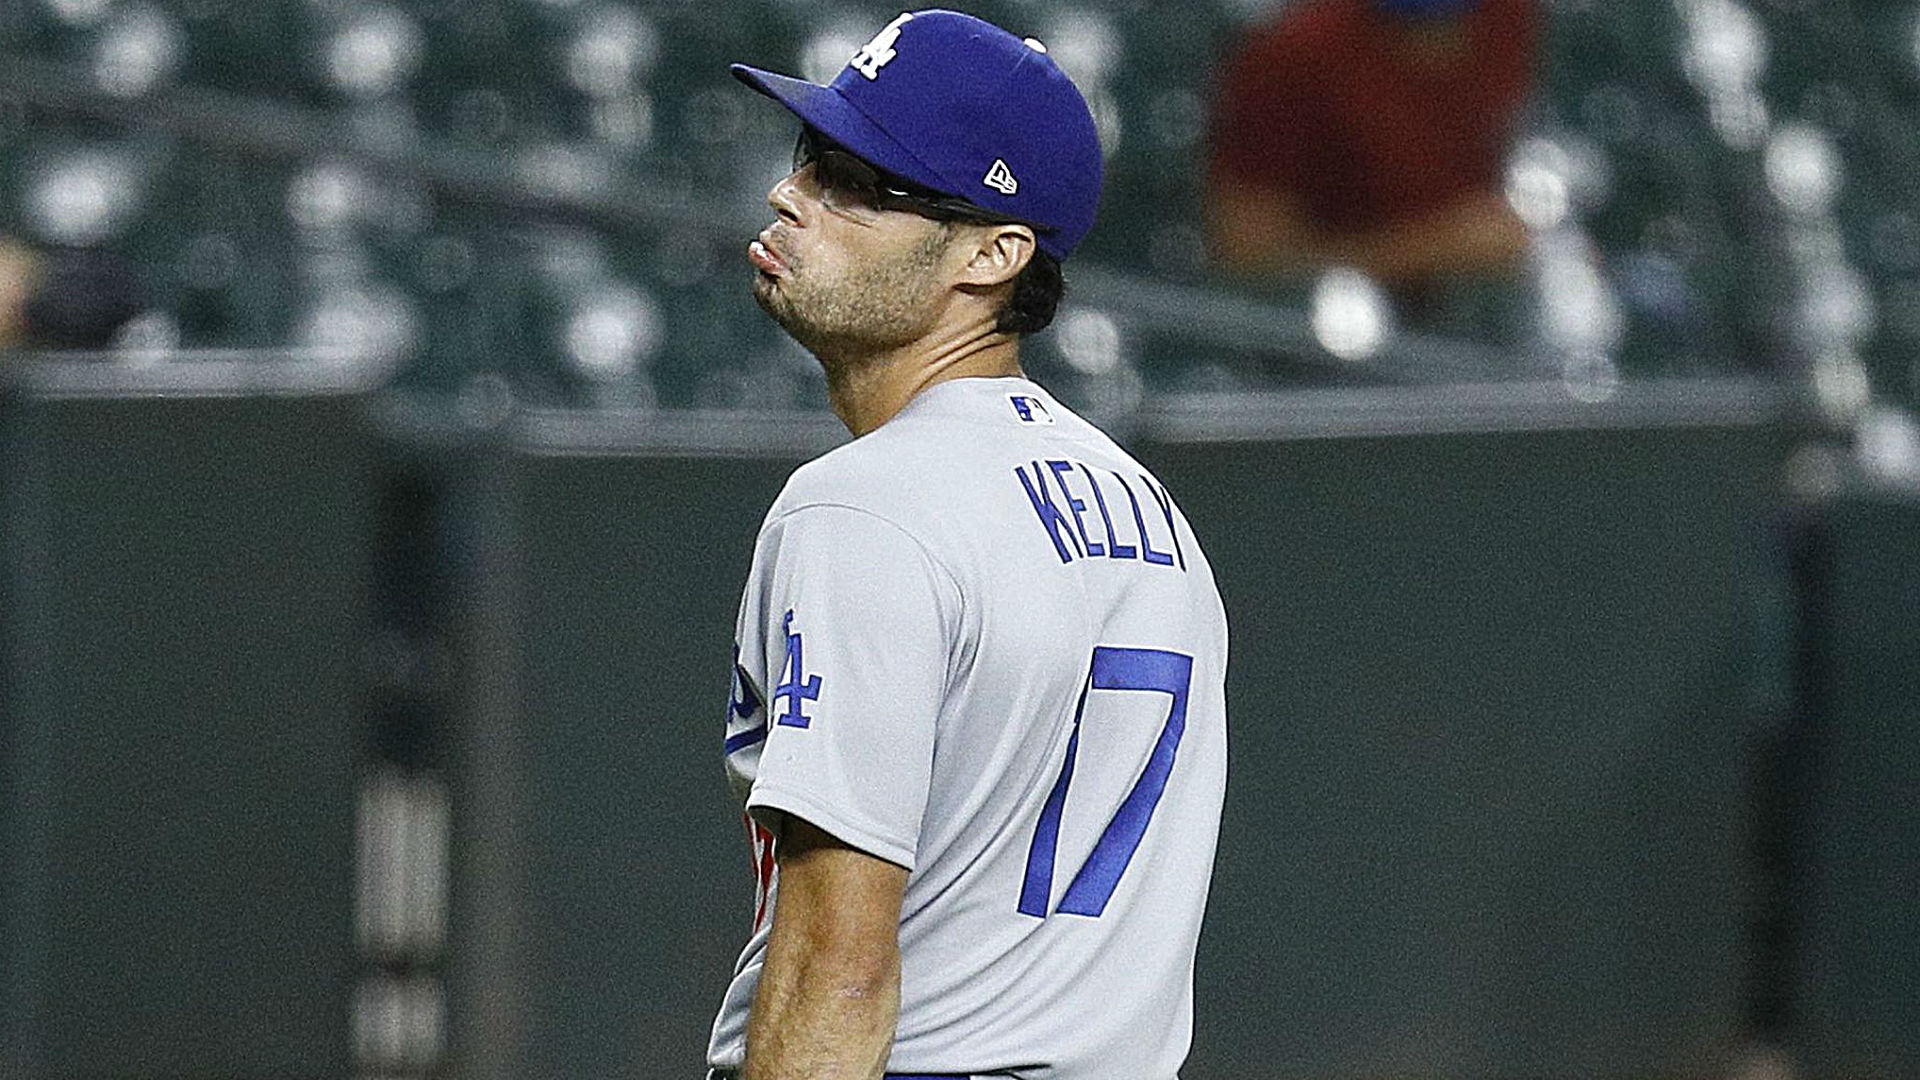 MLB's harsh suspension of Dodgers' Joe Kelly sends warning to stop throwing at Astros players